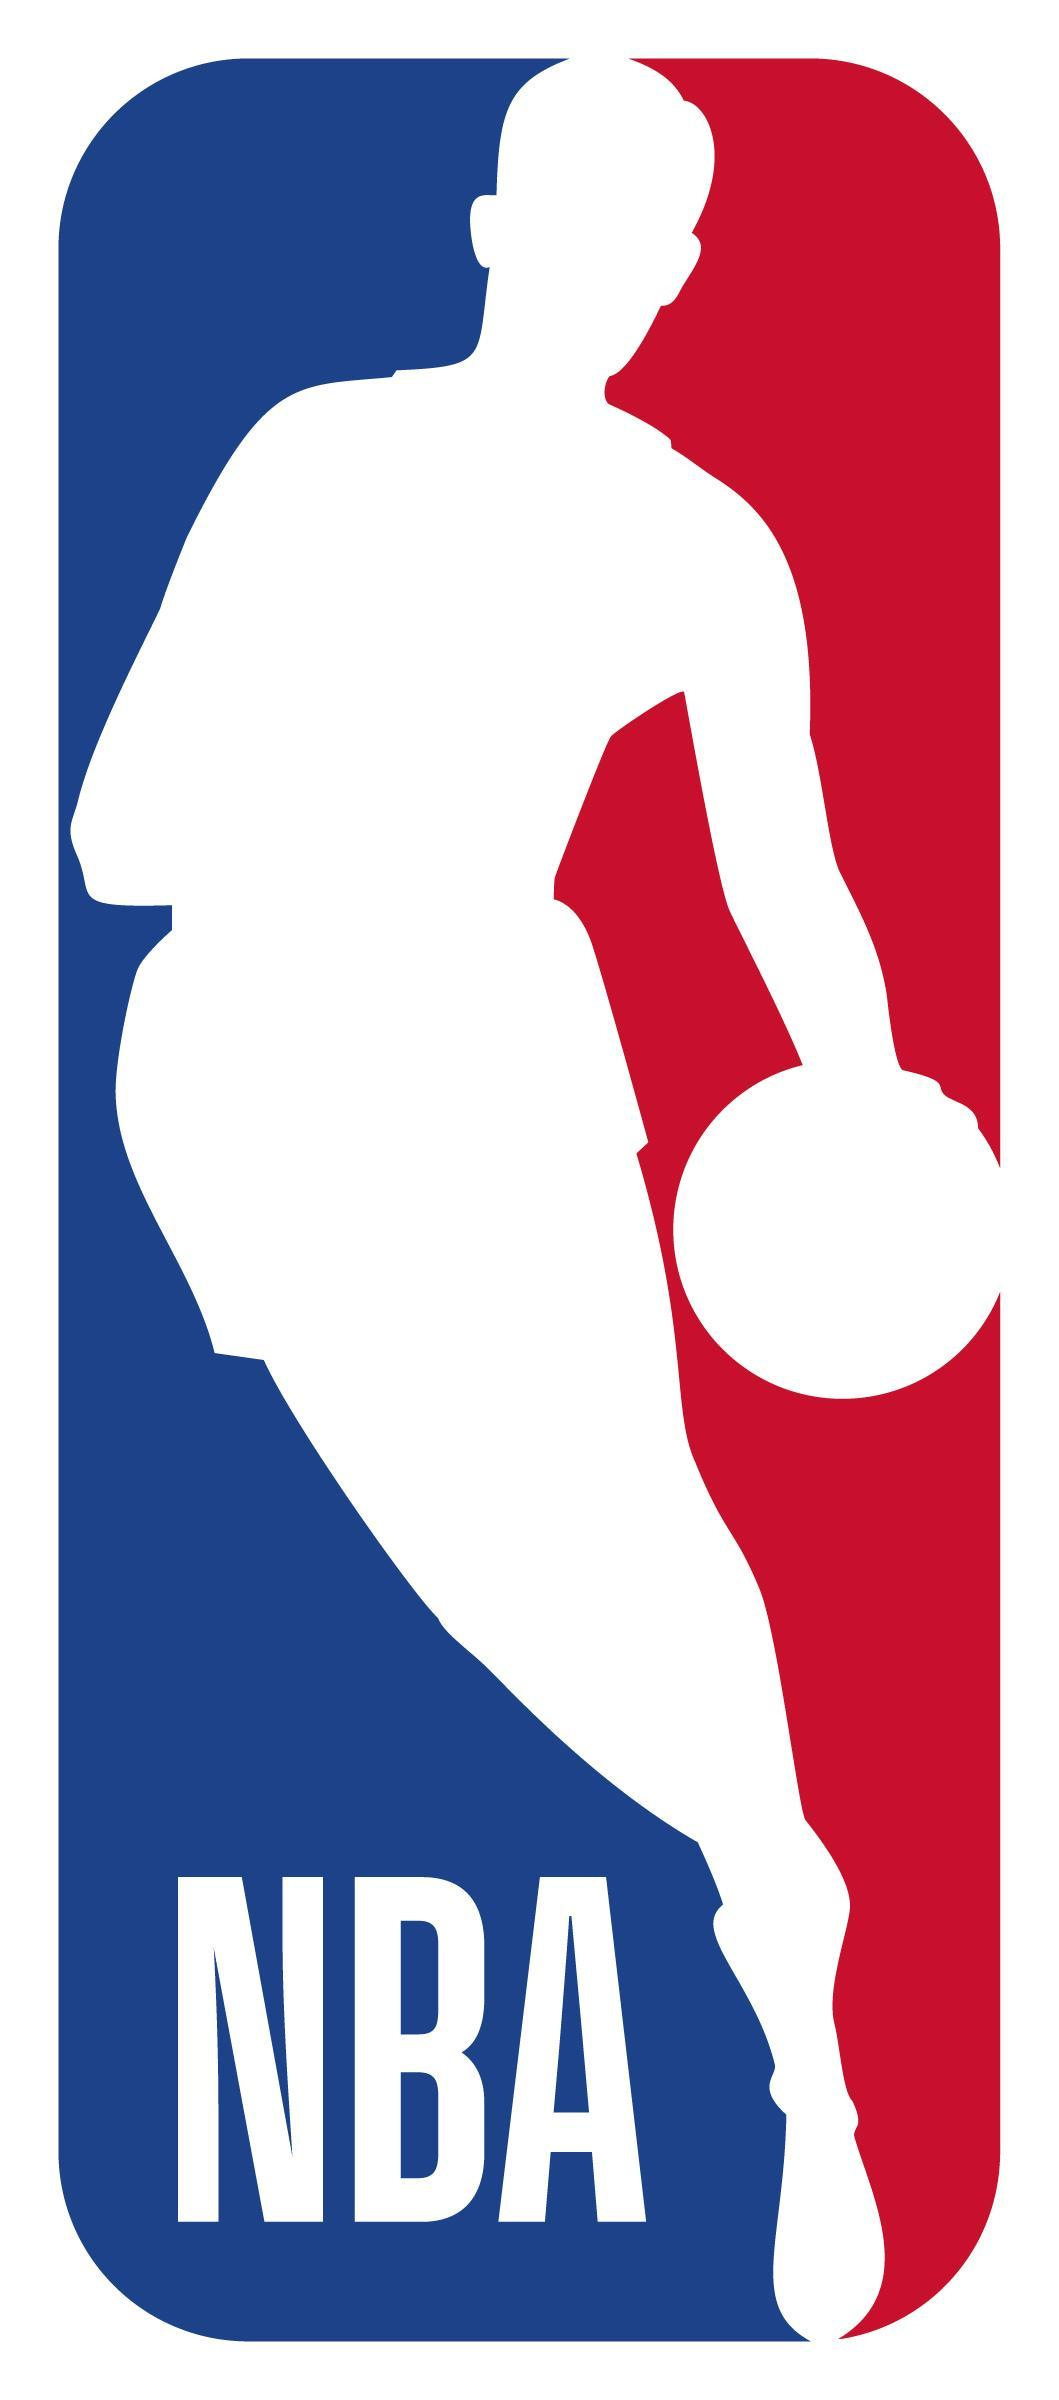 NBA Primary Logo.jpg